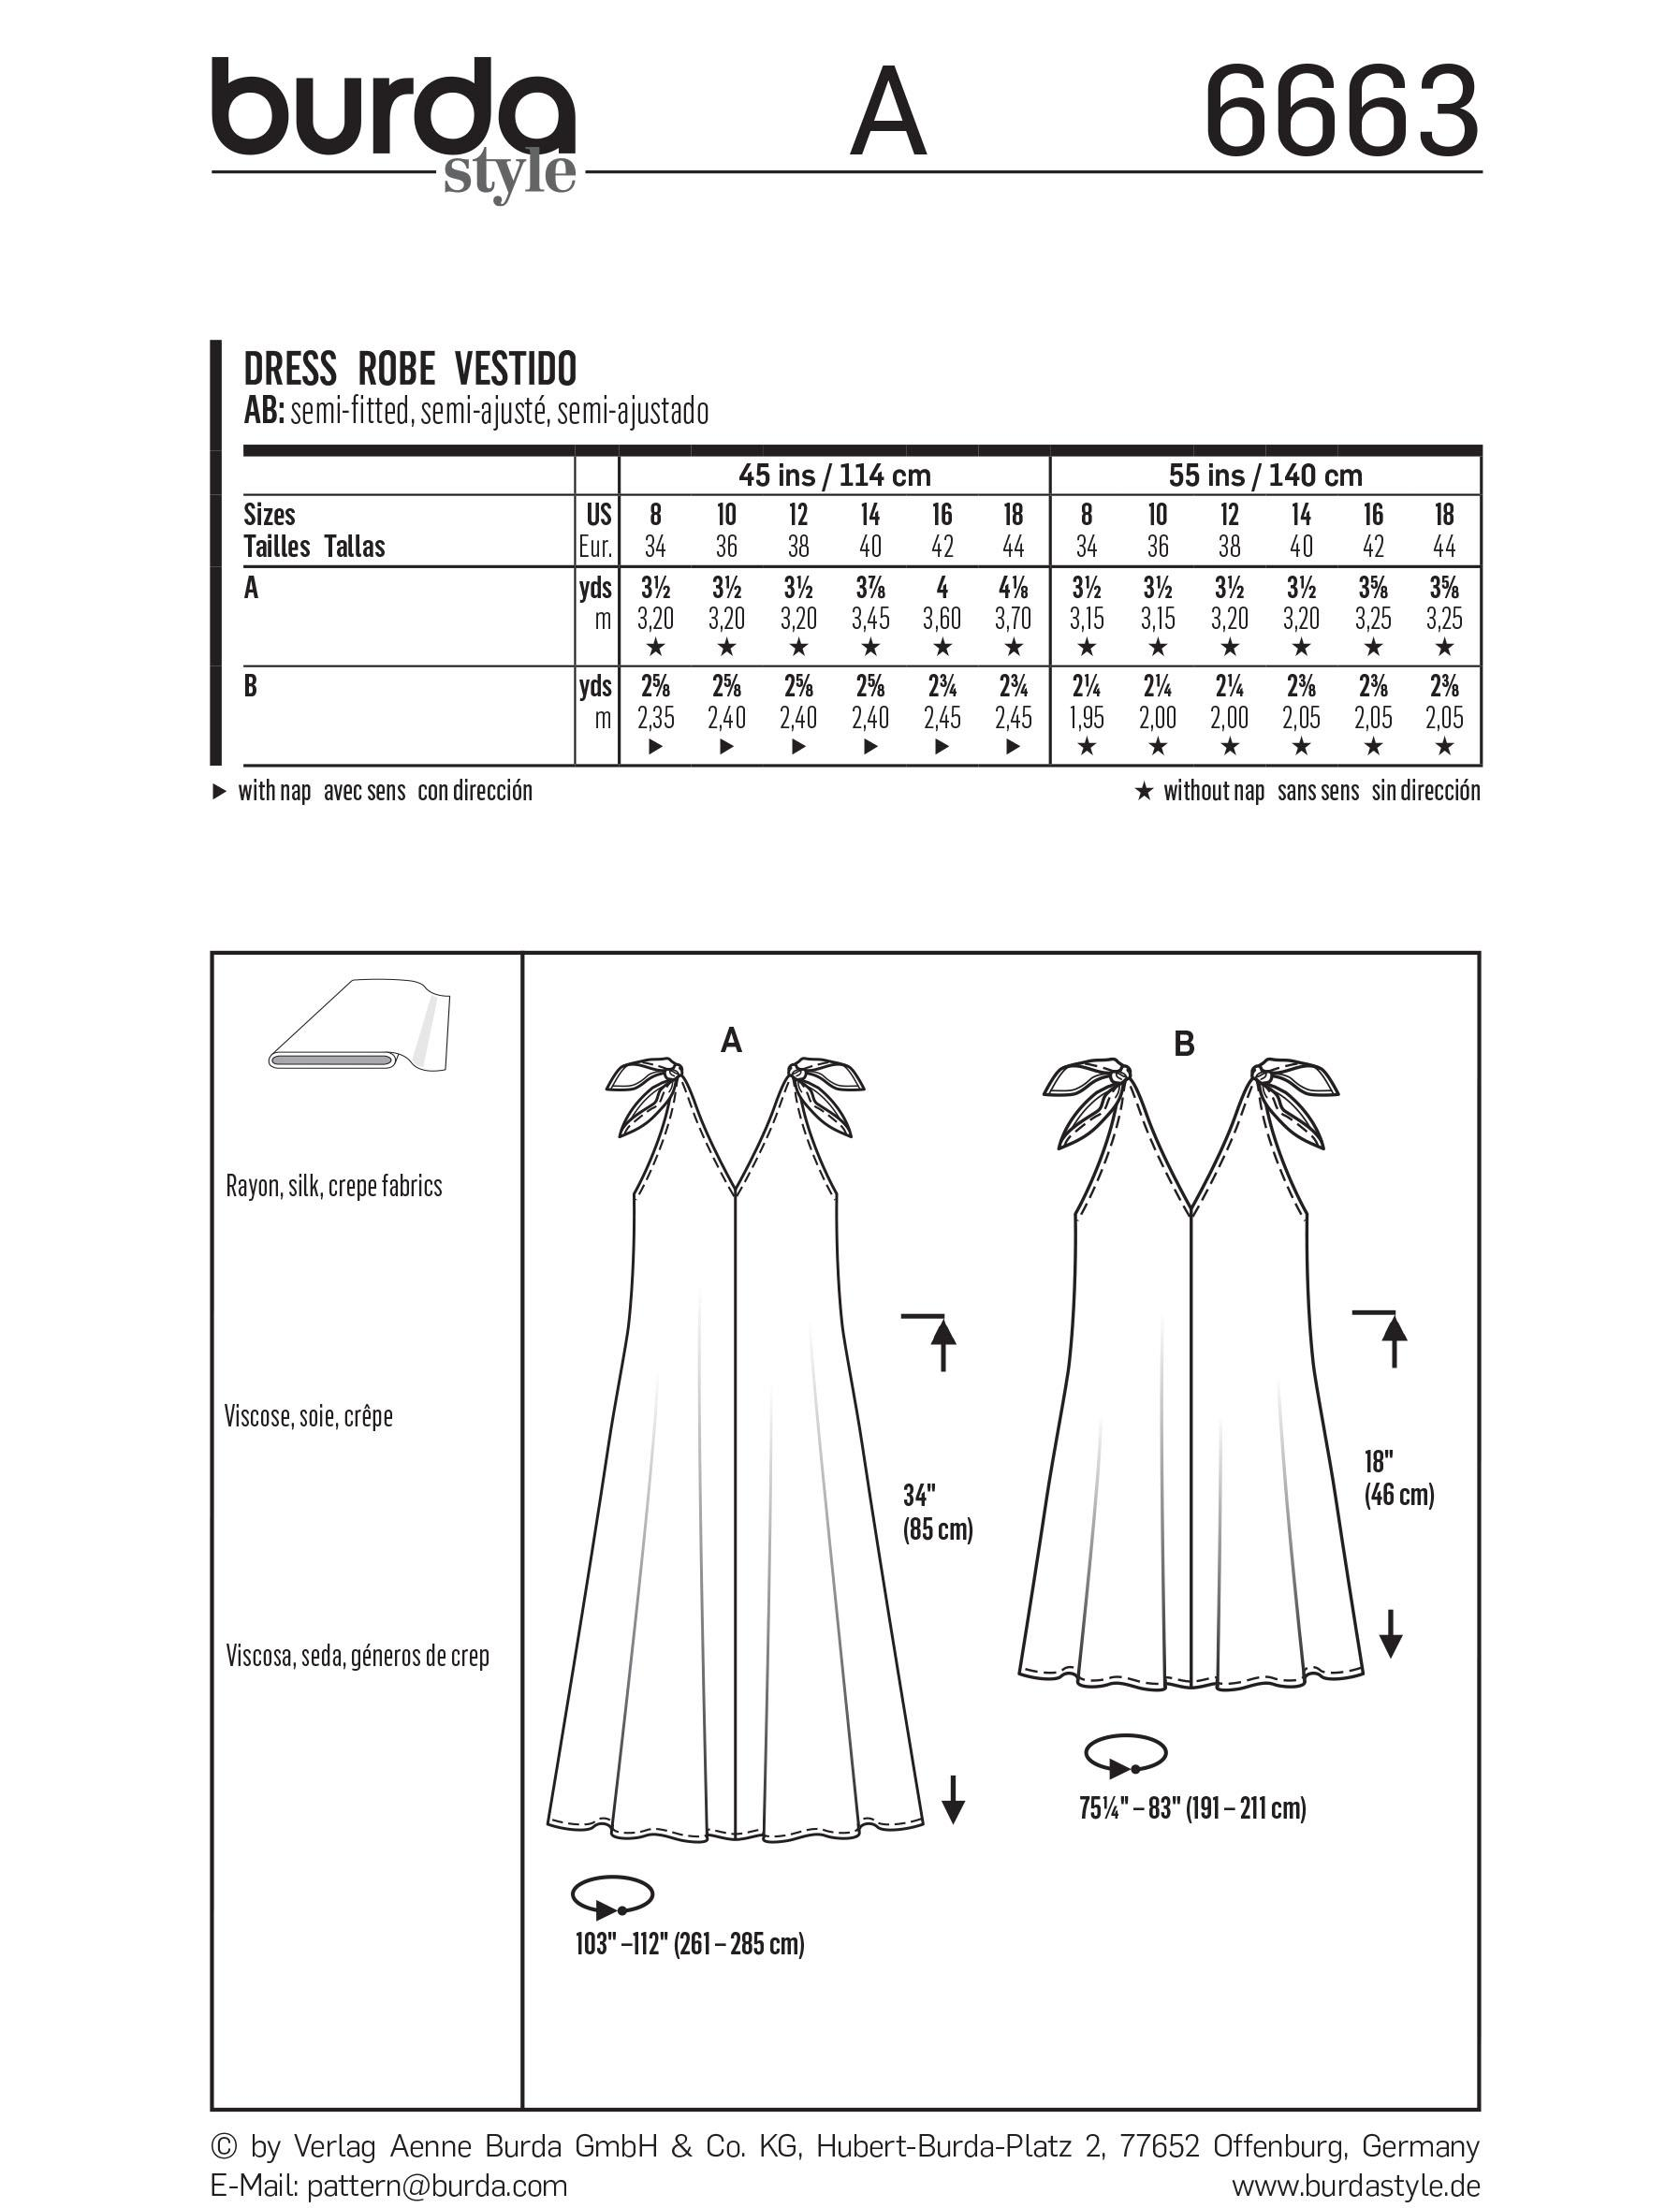 Burda B6663 Women's Dress Sewing Pattern